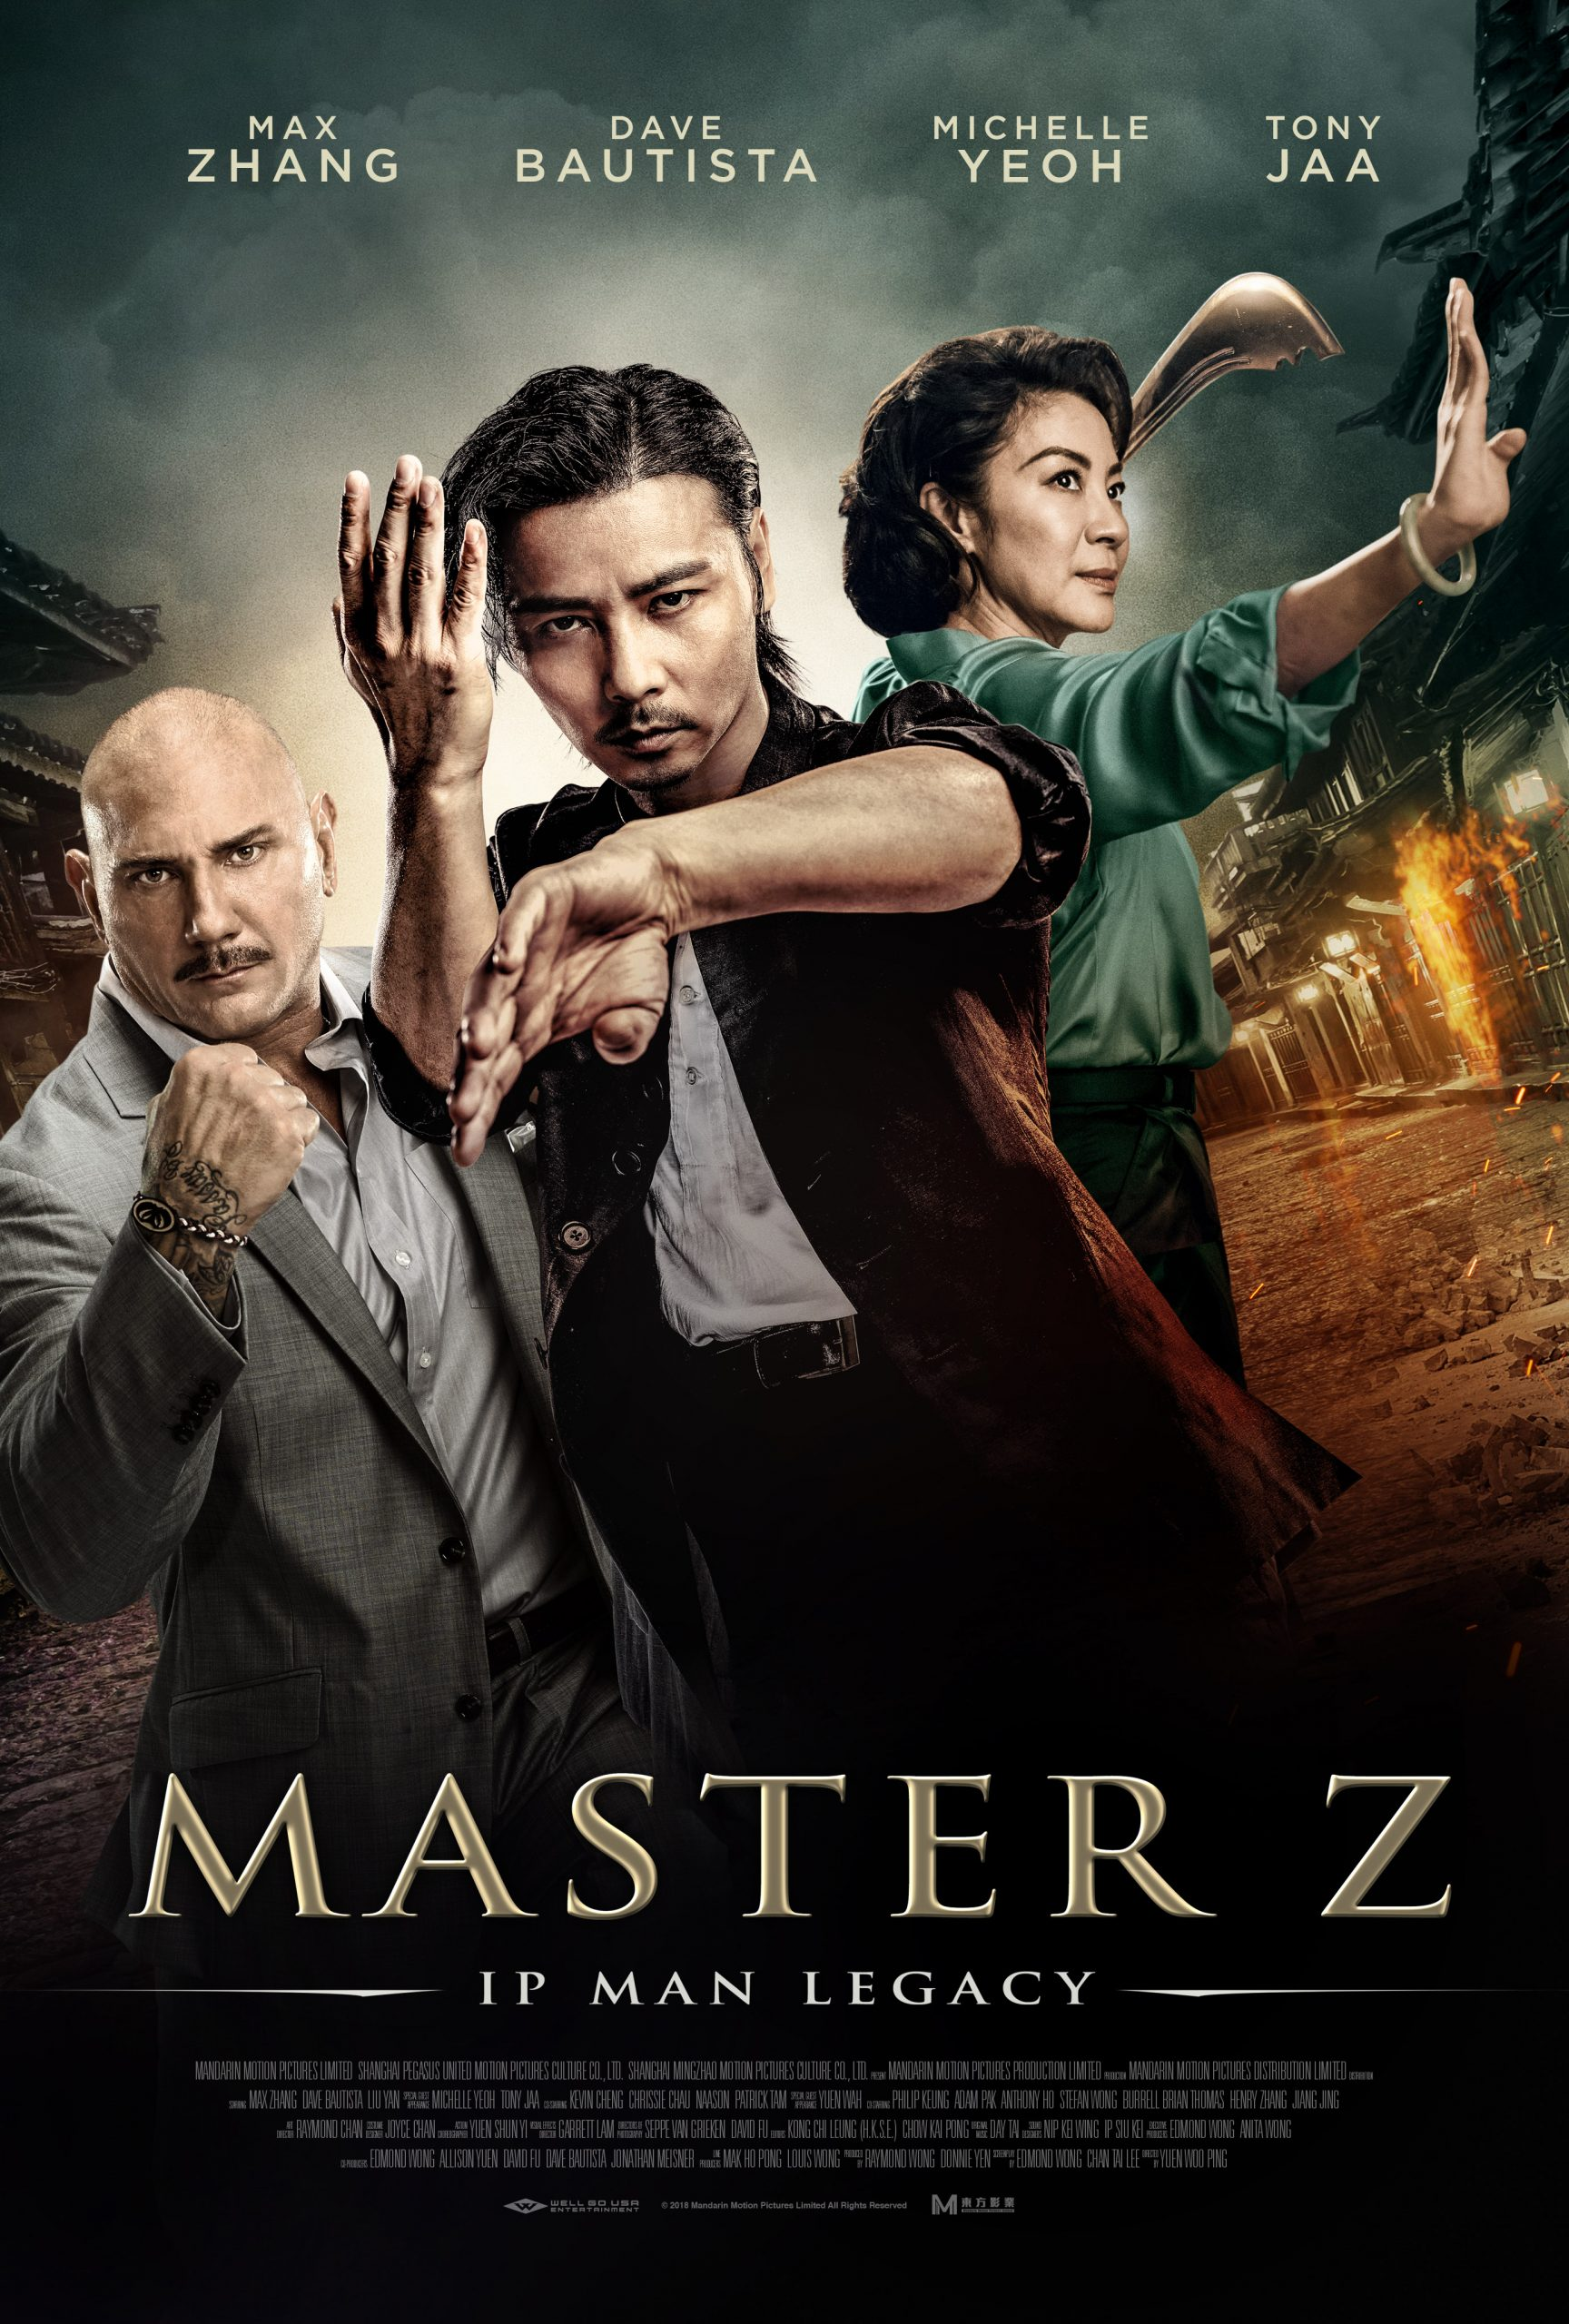 Usta Z: Ip Man'in Mirası – Ip Man Legacy: Master Z (2018)